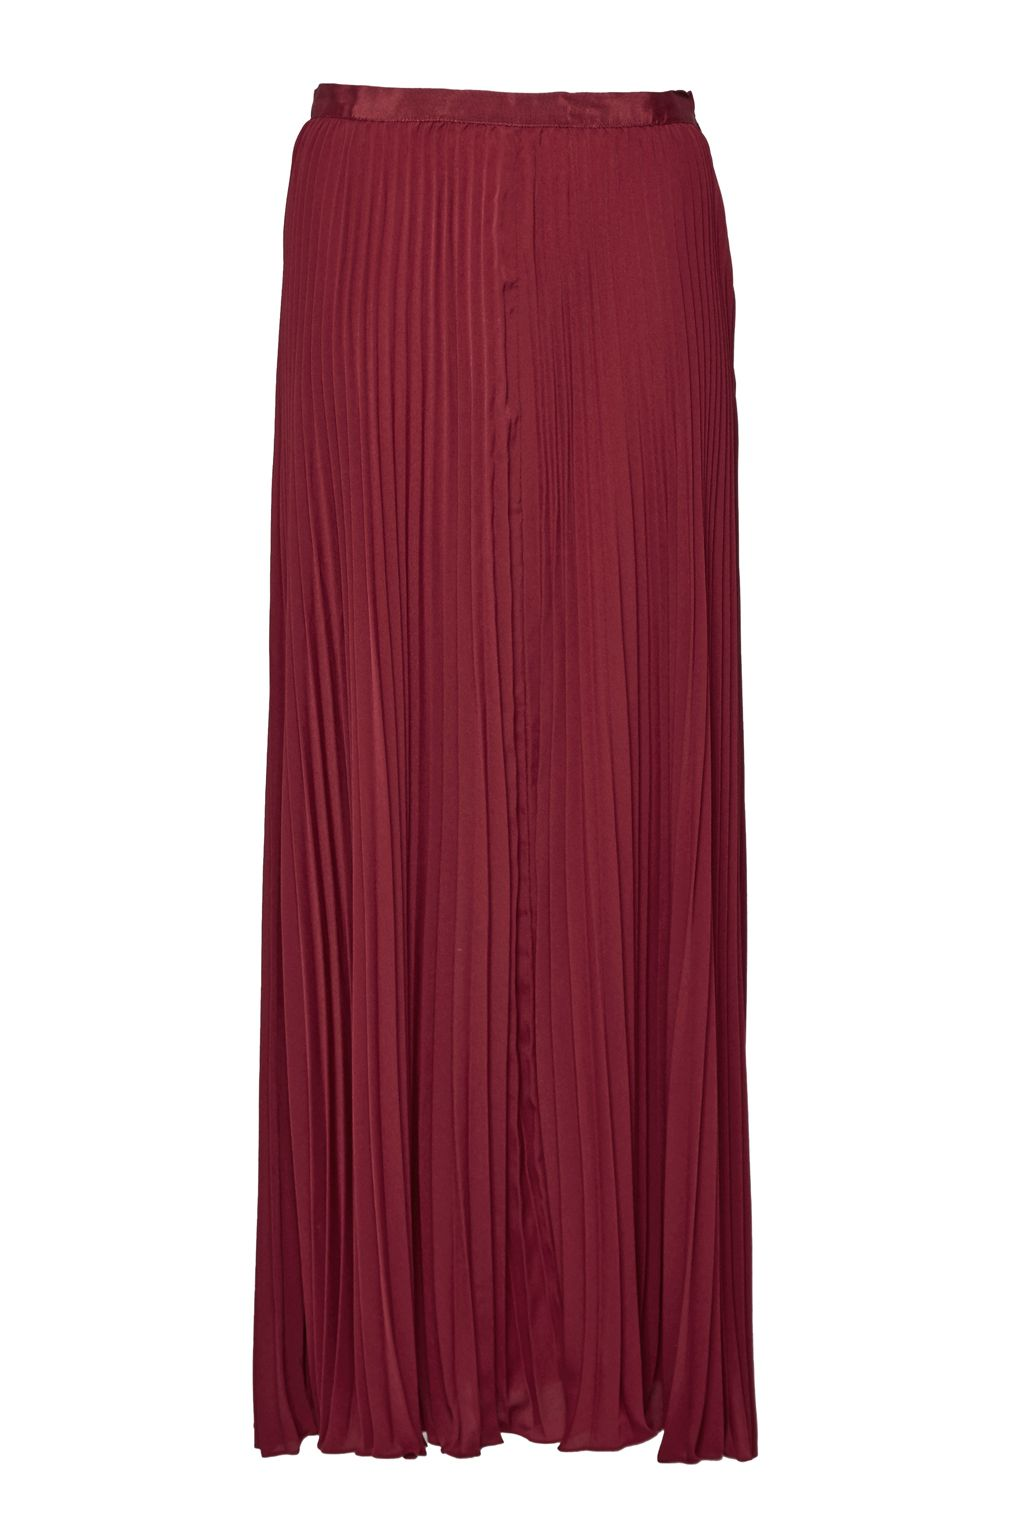 French Connection Classic Crepe Pleated Maxi Skirt, Red